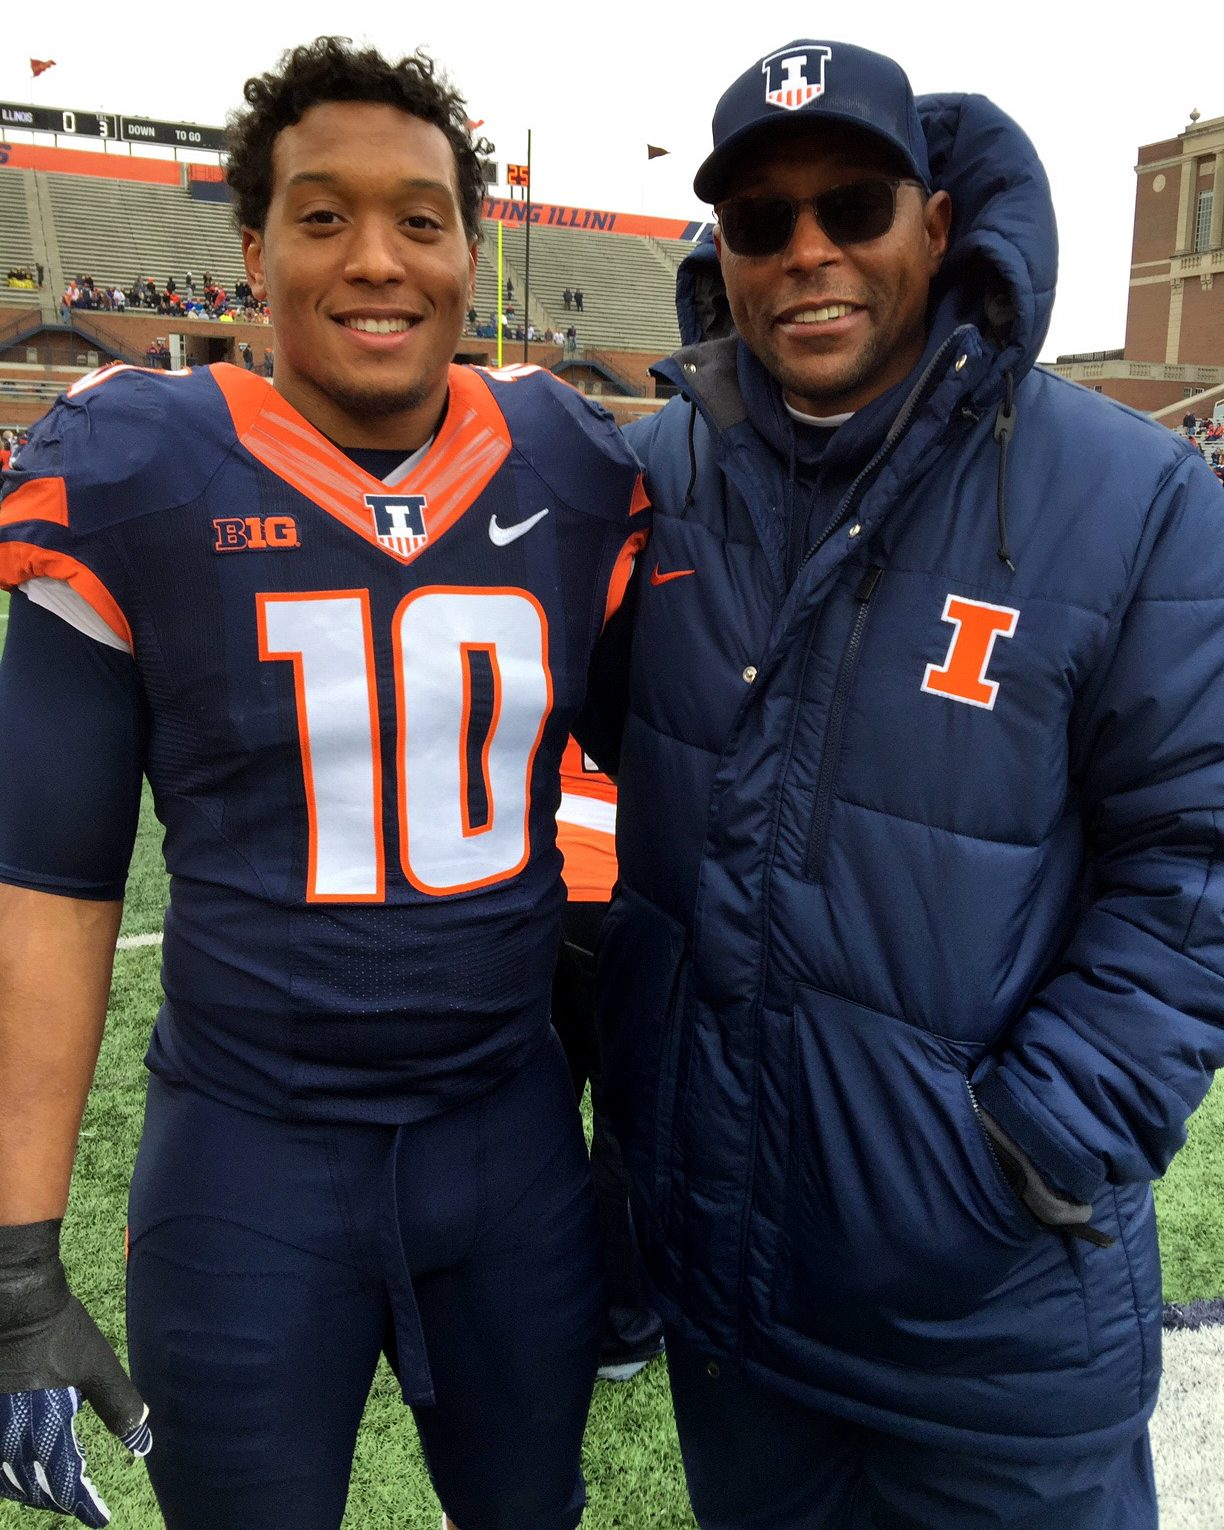 Vikings' Hardy Nickerson following in footsteps of his father, a ...